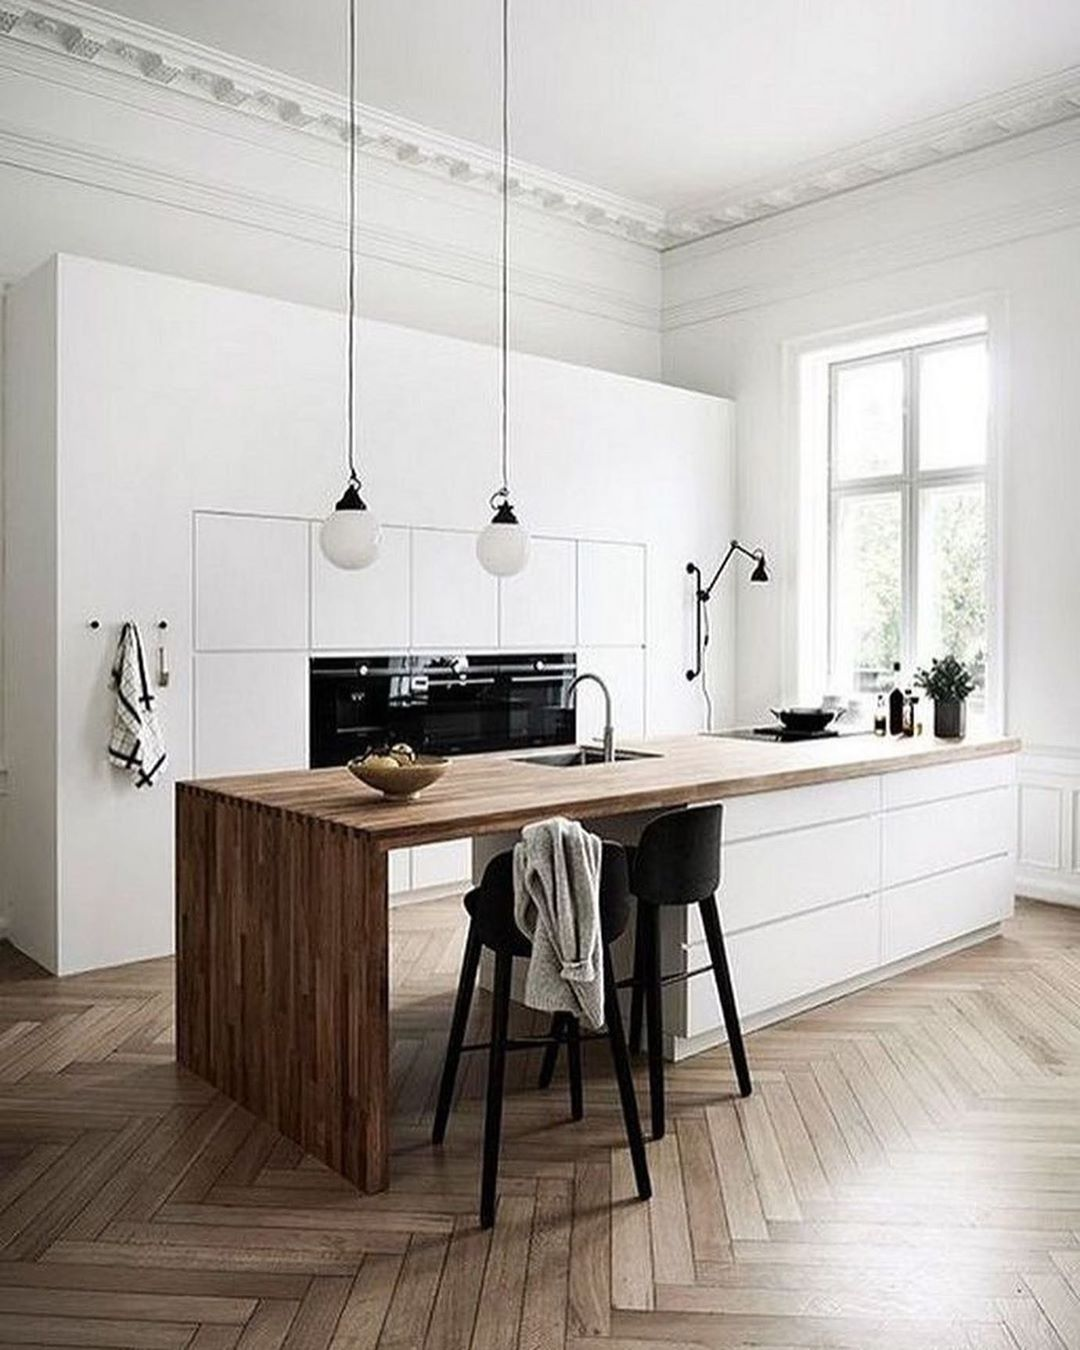 A Designers Mind On Instagram When You Need Some Inspiration For Light And Bright In 2020 Classic Kitchen Design Scandinavian Kitchen Design Contemporary Kitchen